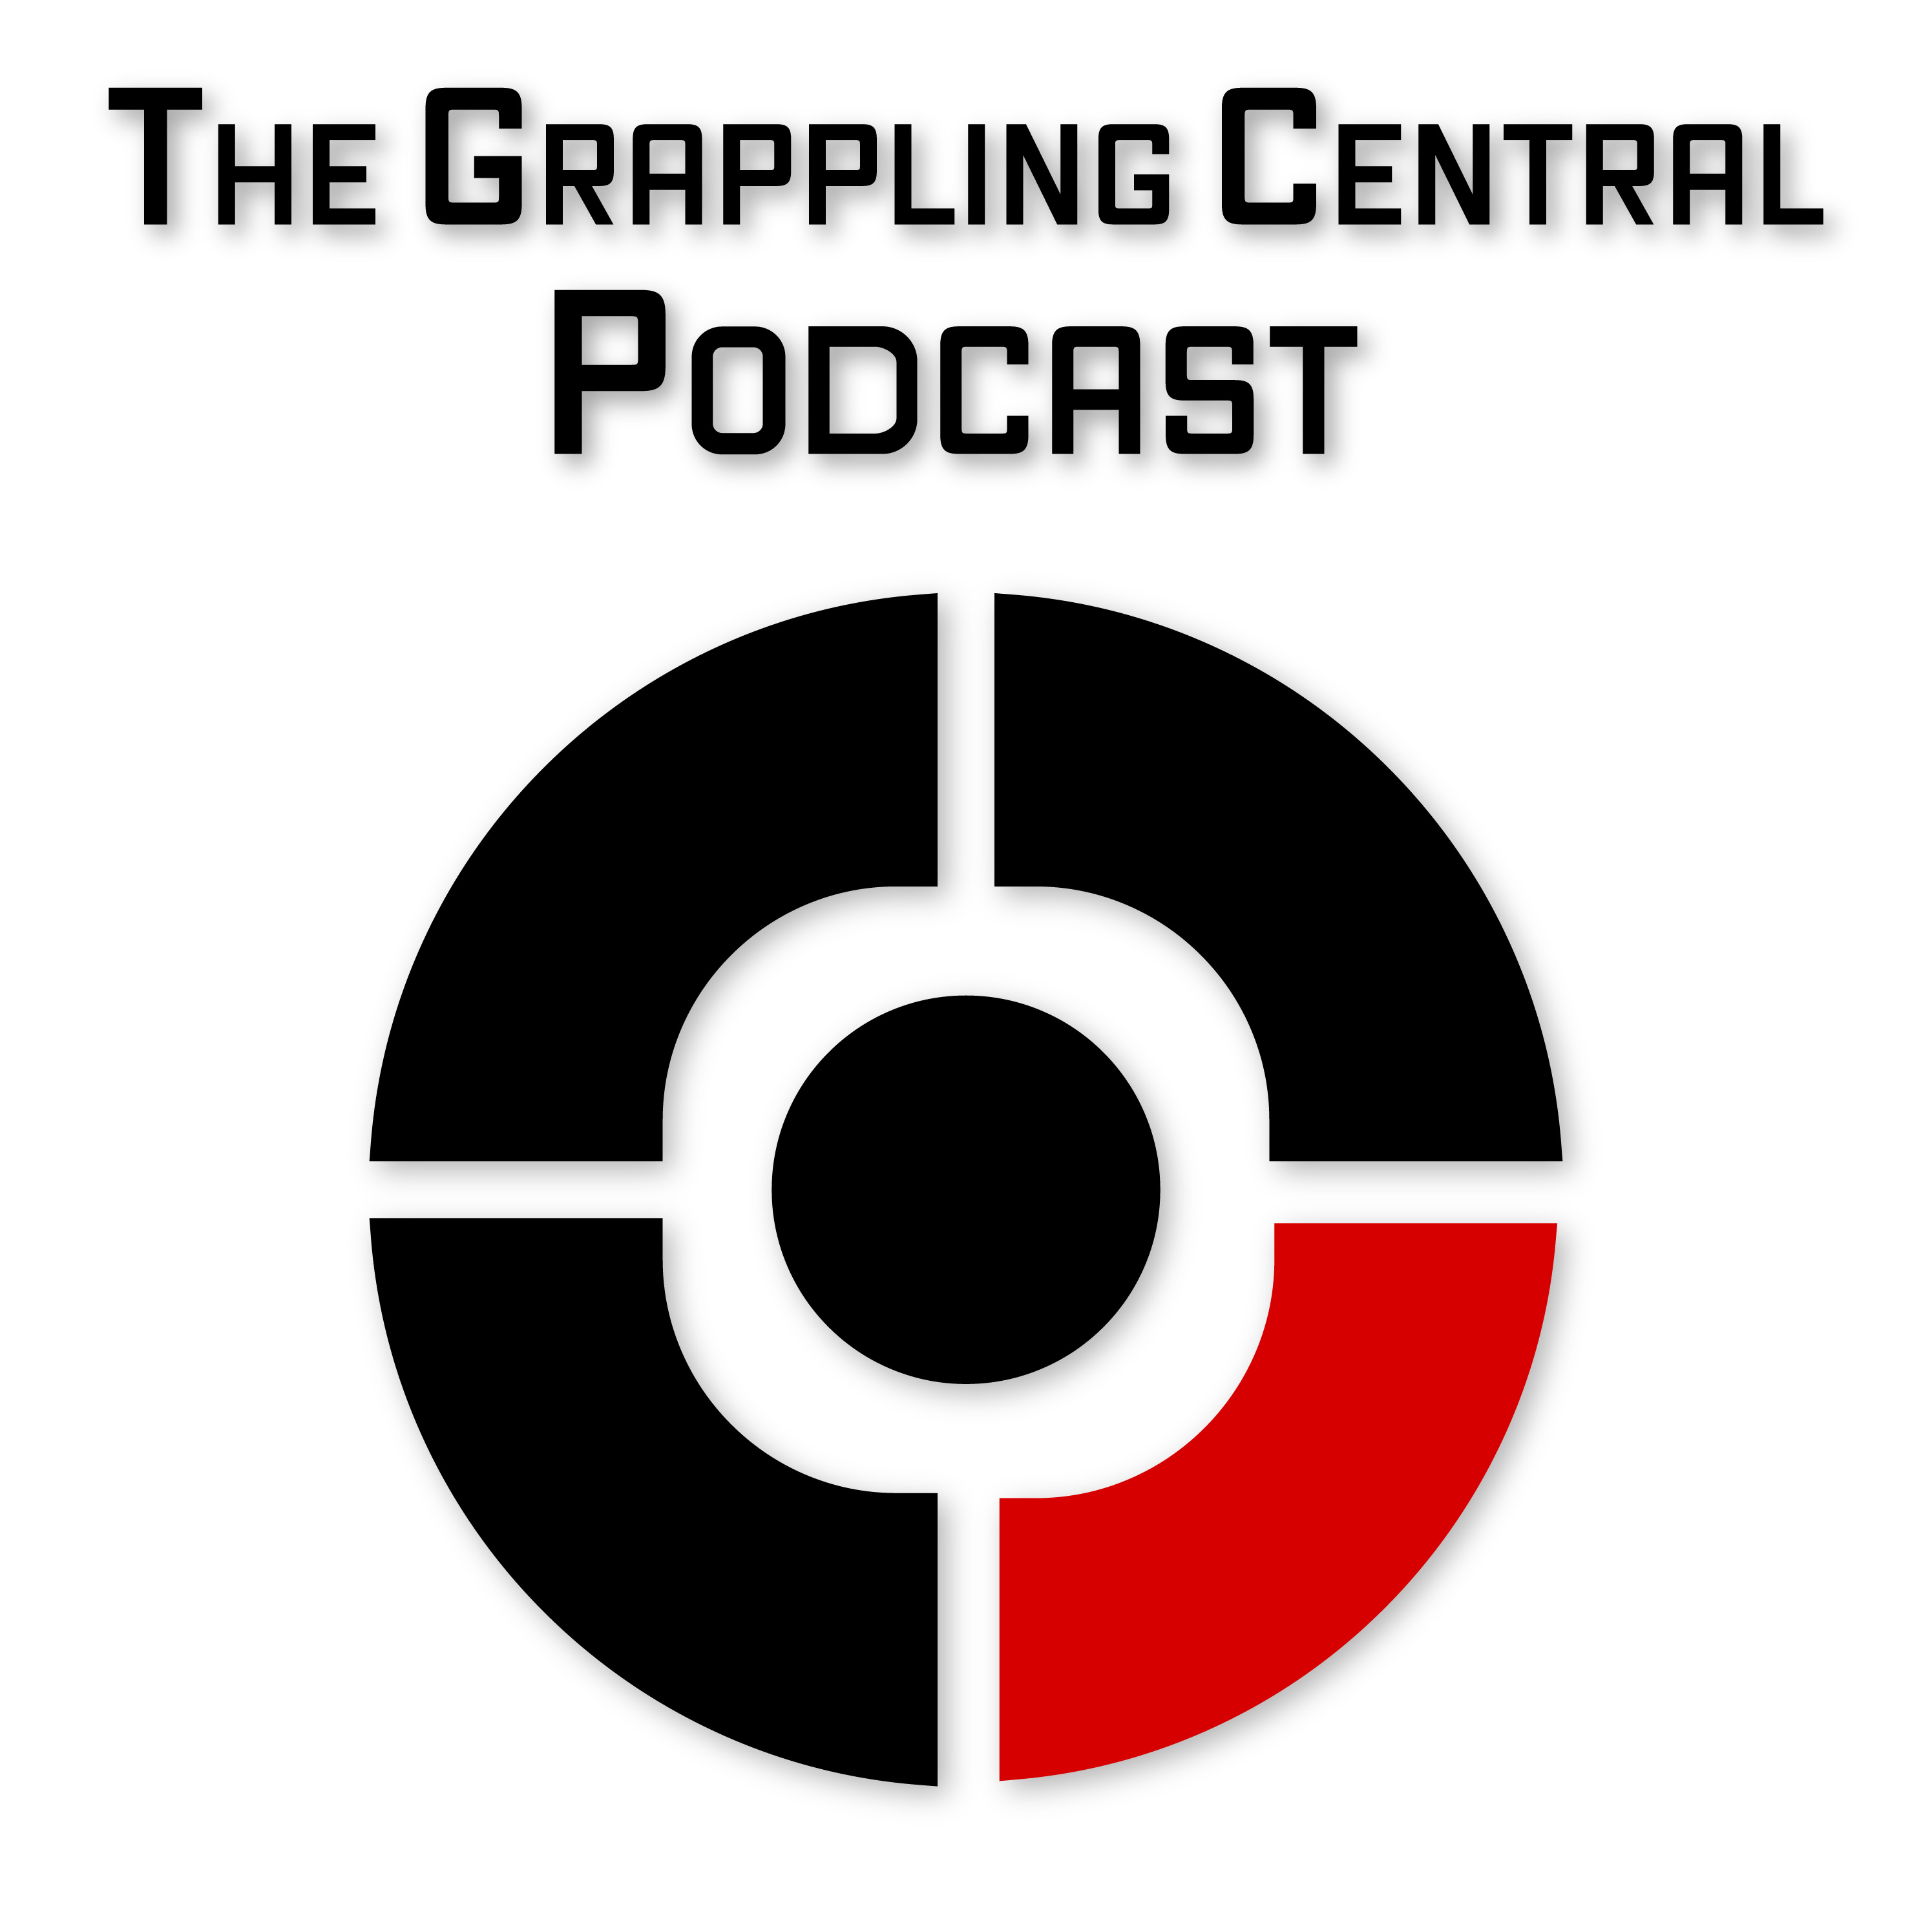 The Grappling Central Podcast: The biggest names in Brazilian Jiu-Jitsu (BJJ), MMA and Grappling